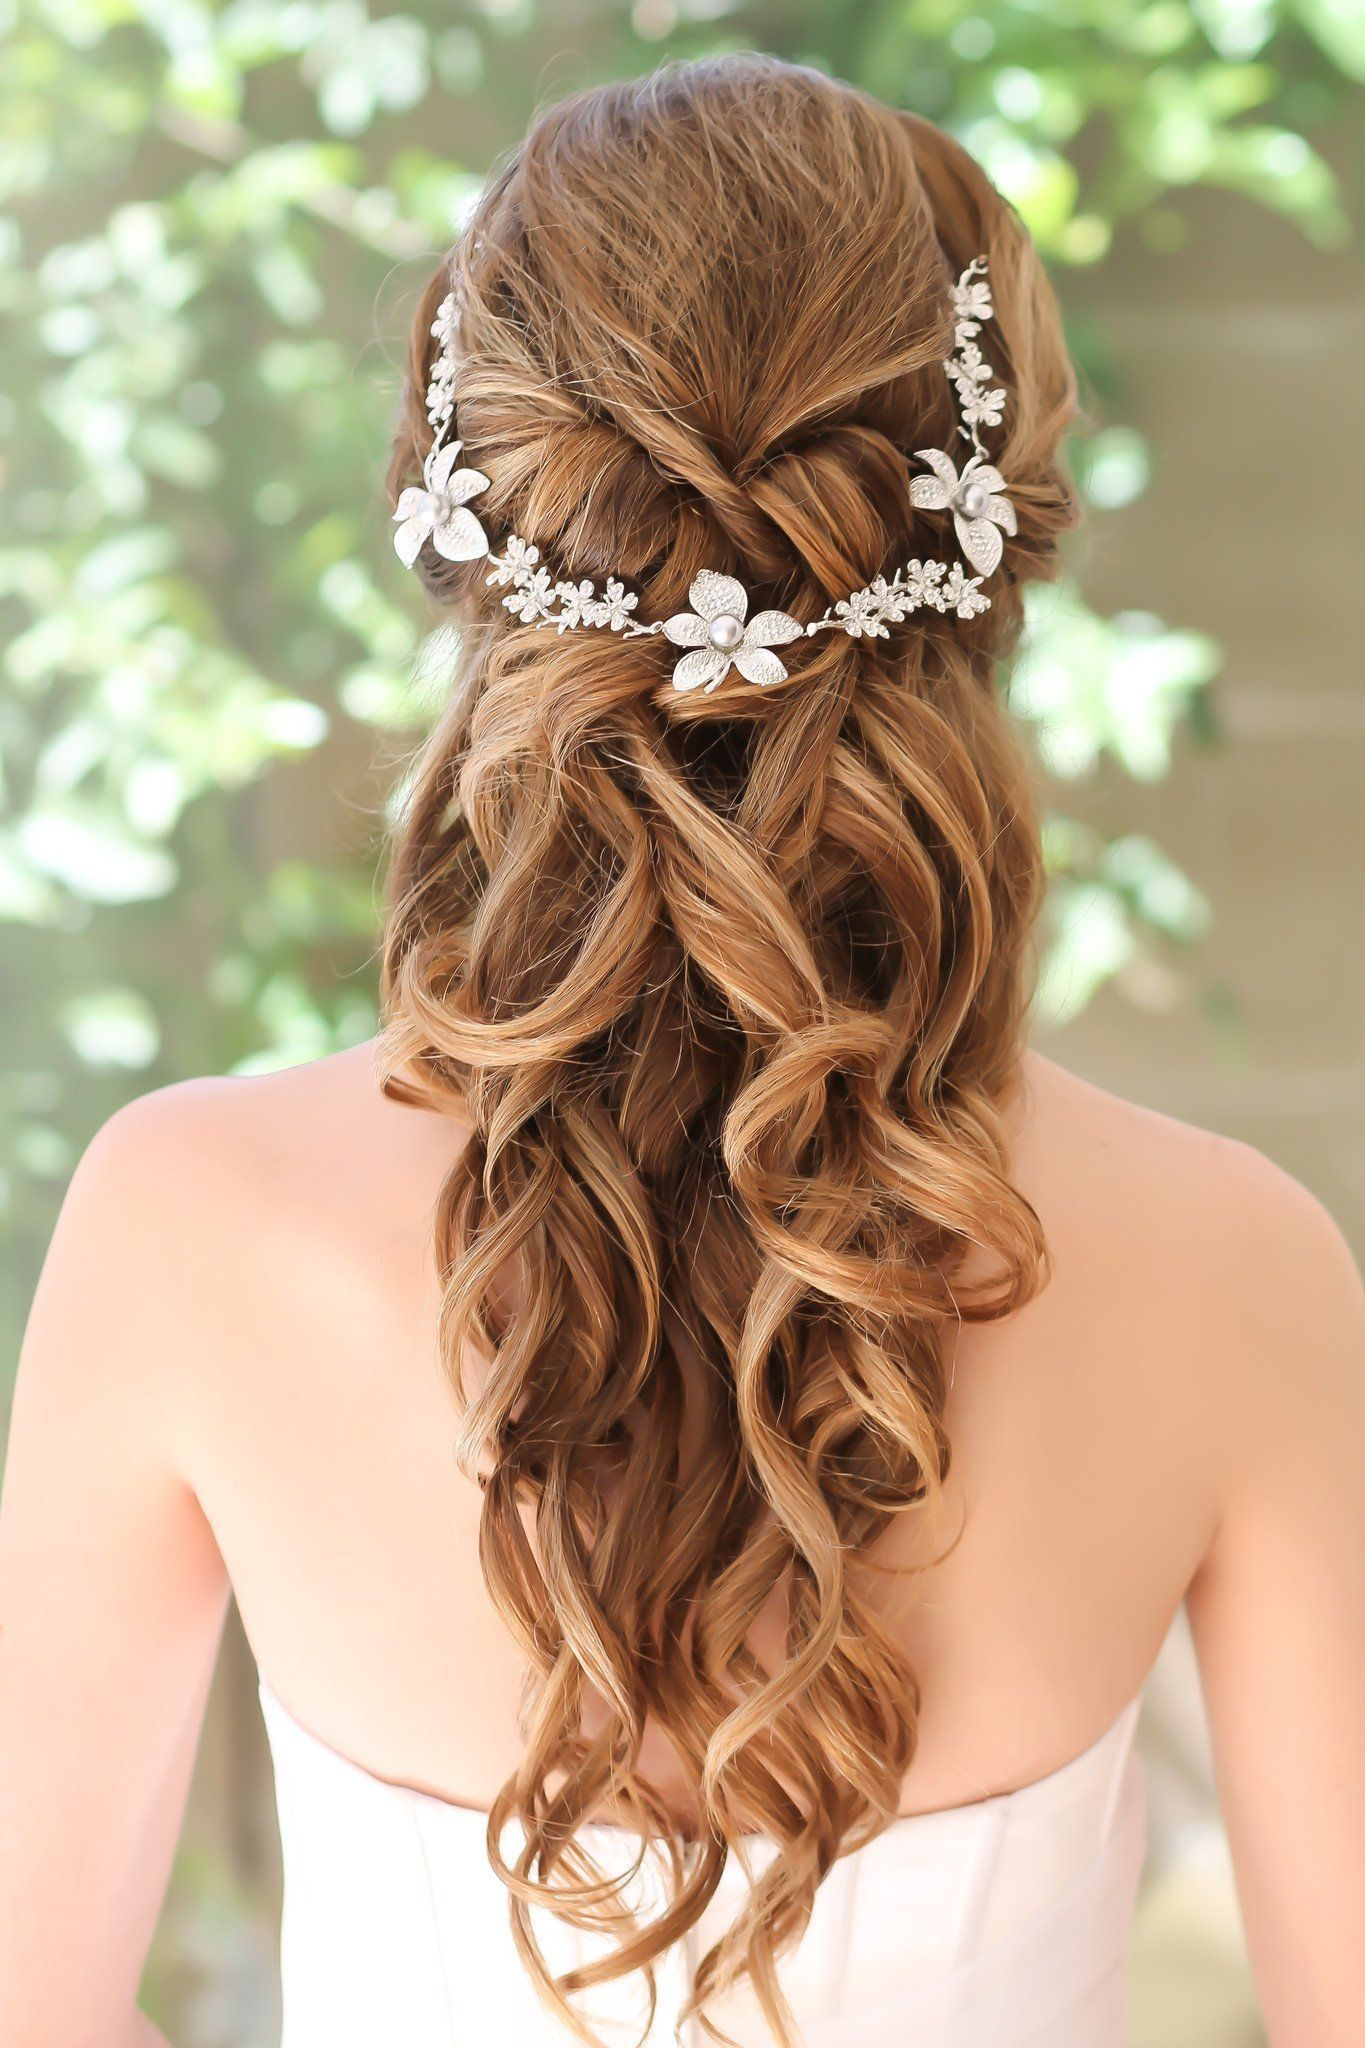 31 how to make wedding hairstyle for women with long hair